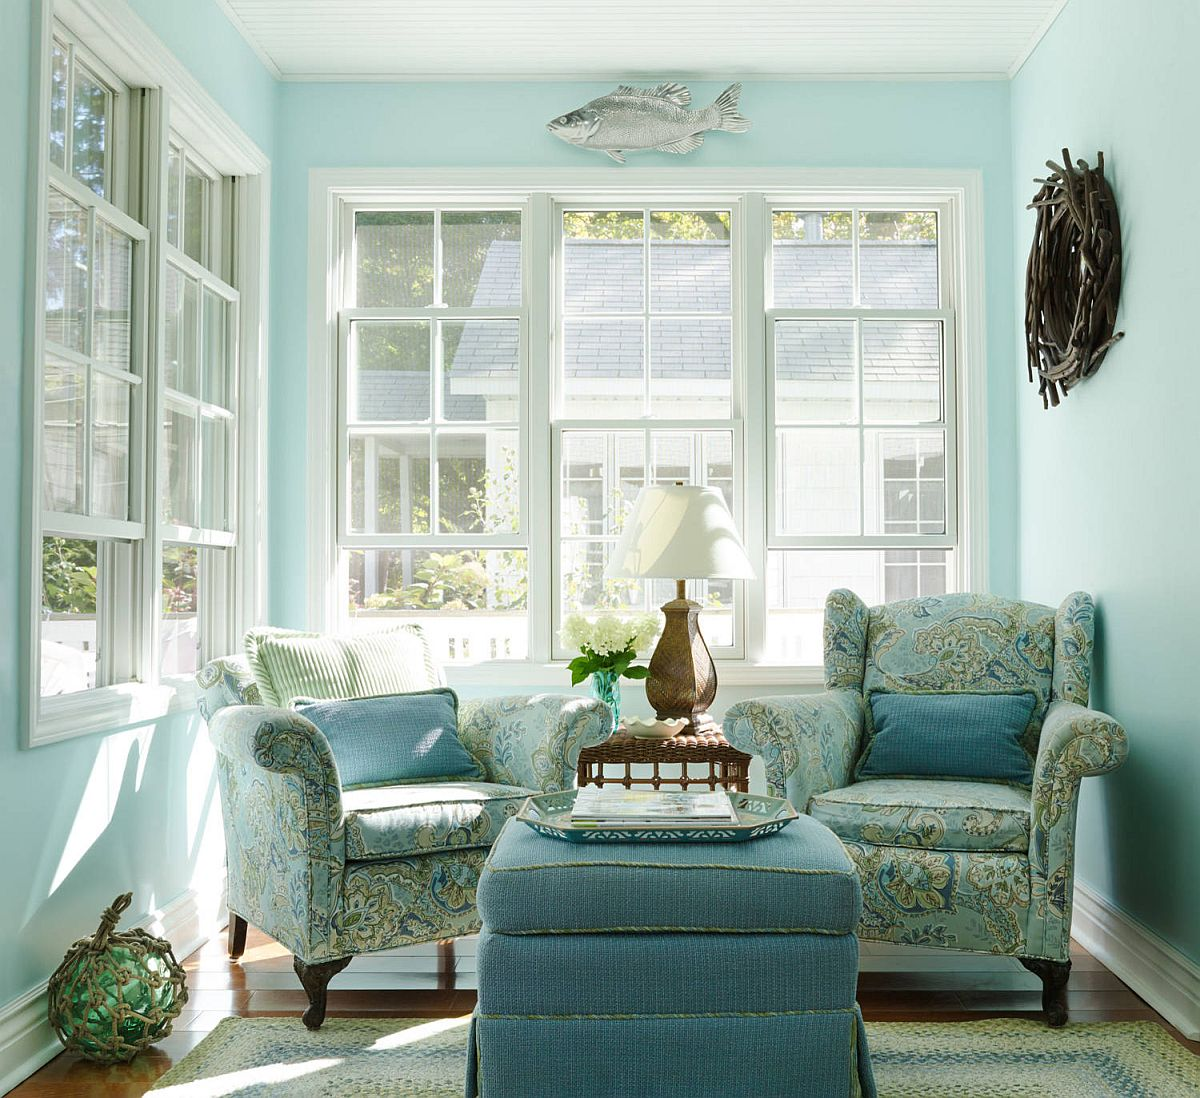 Beautiful beach style nursery in blue with relaxing club chairs and uncomplicated design